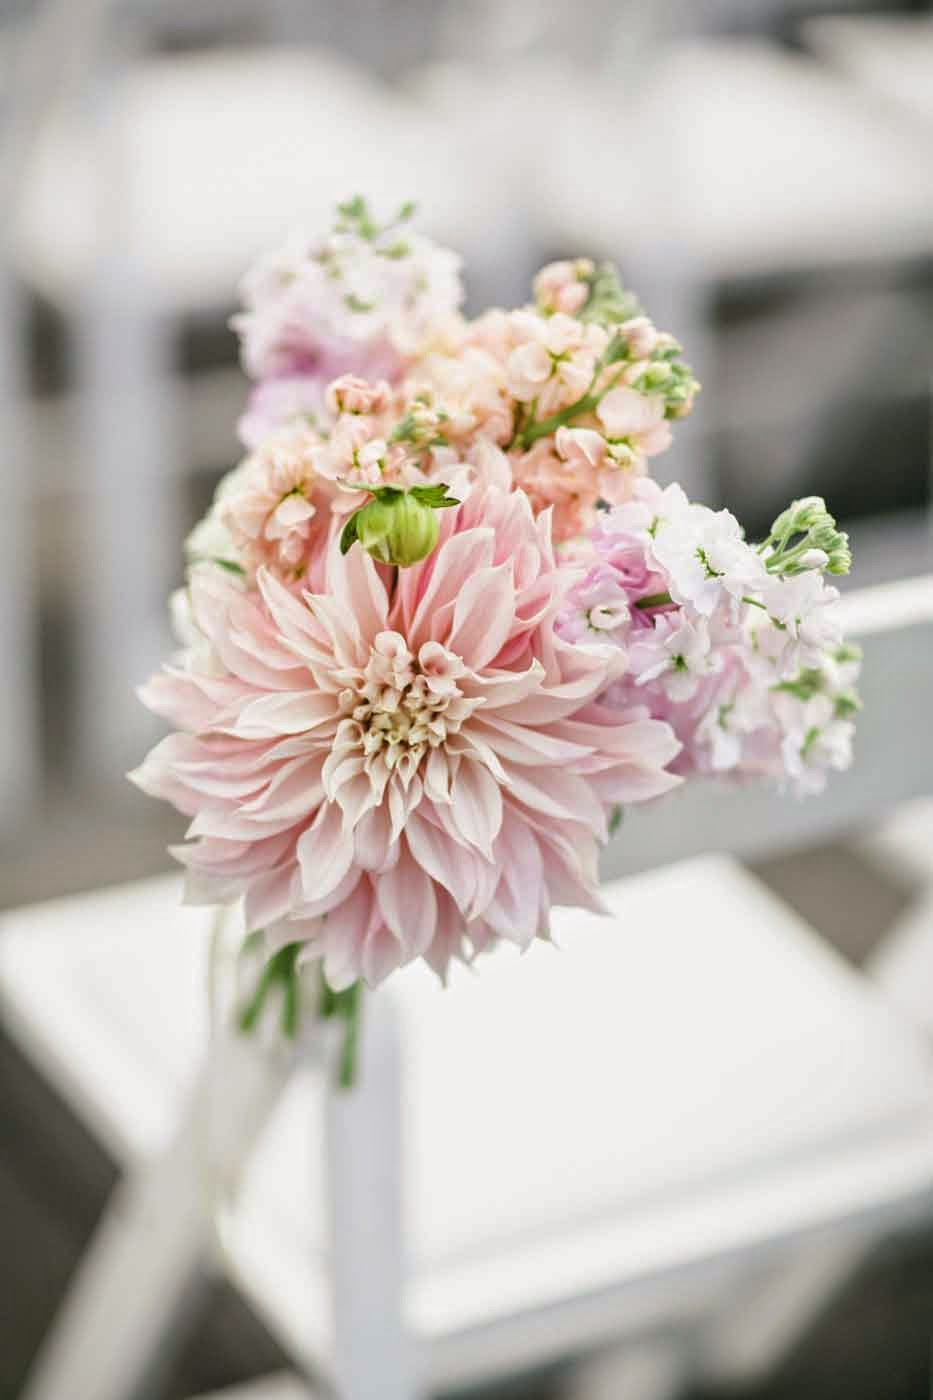 blush wedding flowers, Seattle wedding, Flora Nova Design, Bell Harbor wedding